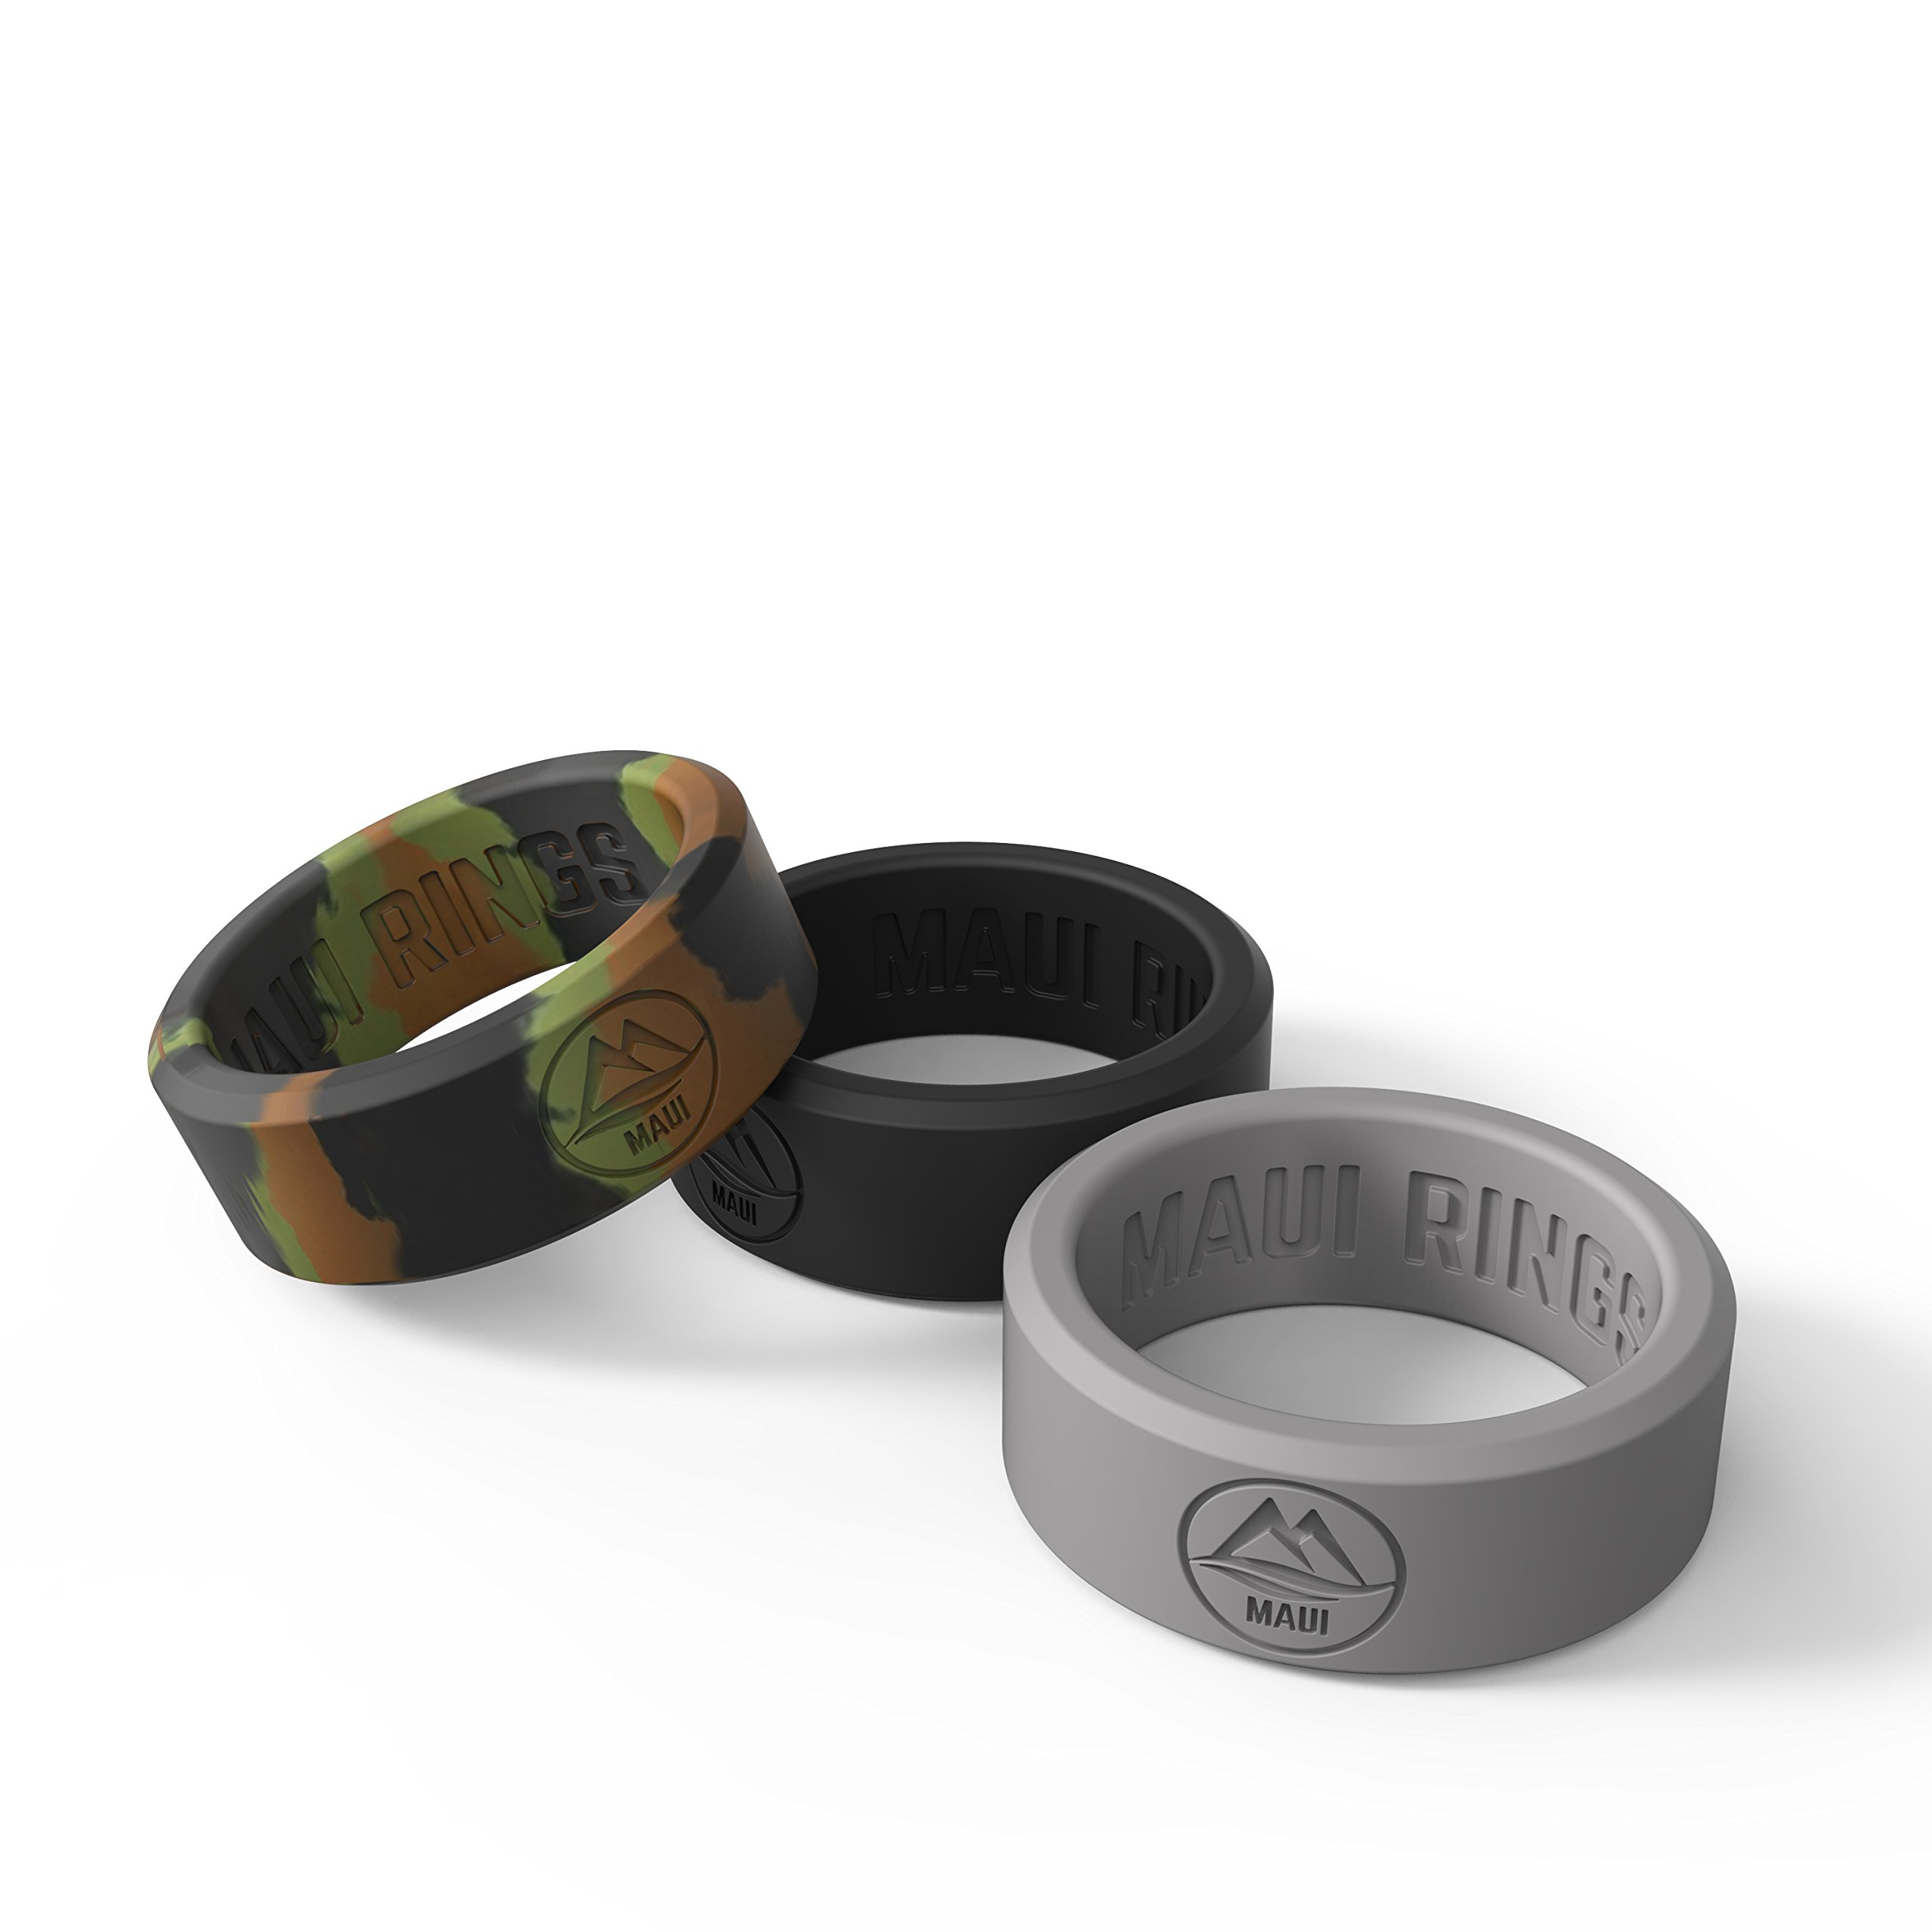 MAUI RINGS BEST Silicone Wedding Ring by SOLID STYLE Engagement Rings Silicone Band for Men Wedding Rubber Bands Mens Ring Men Wedding Band SAFE ring Sport Gym (Camo/Black/Gray, 10)